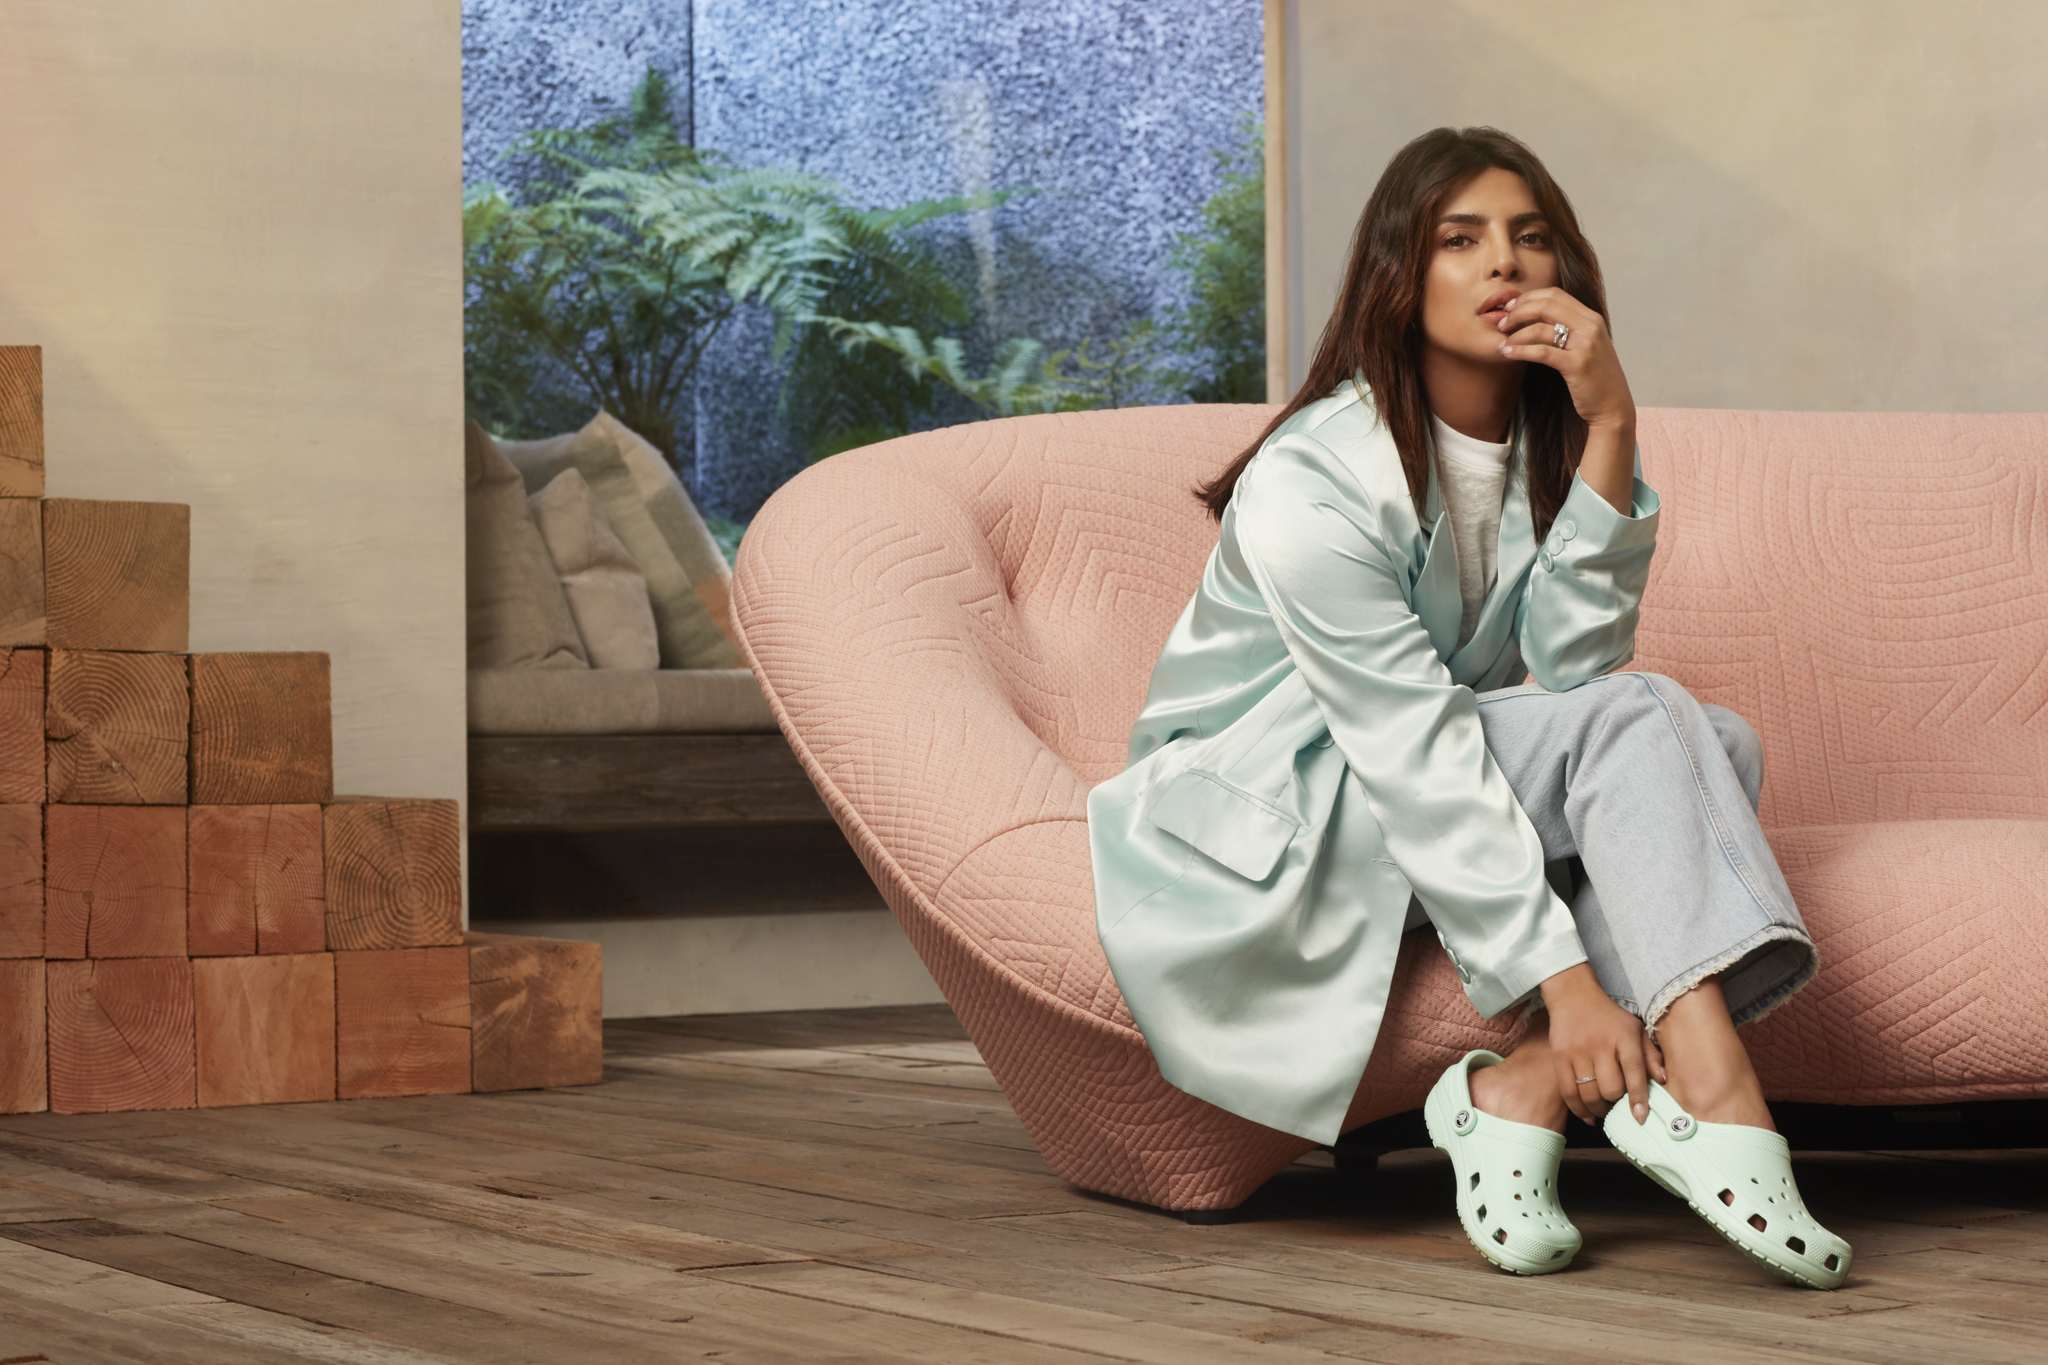 Crocs/Chopra Jonas does joint collab to benefit the UNICEF